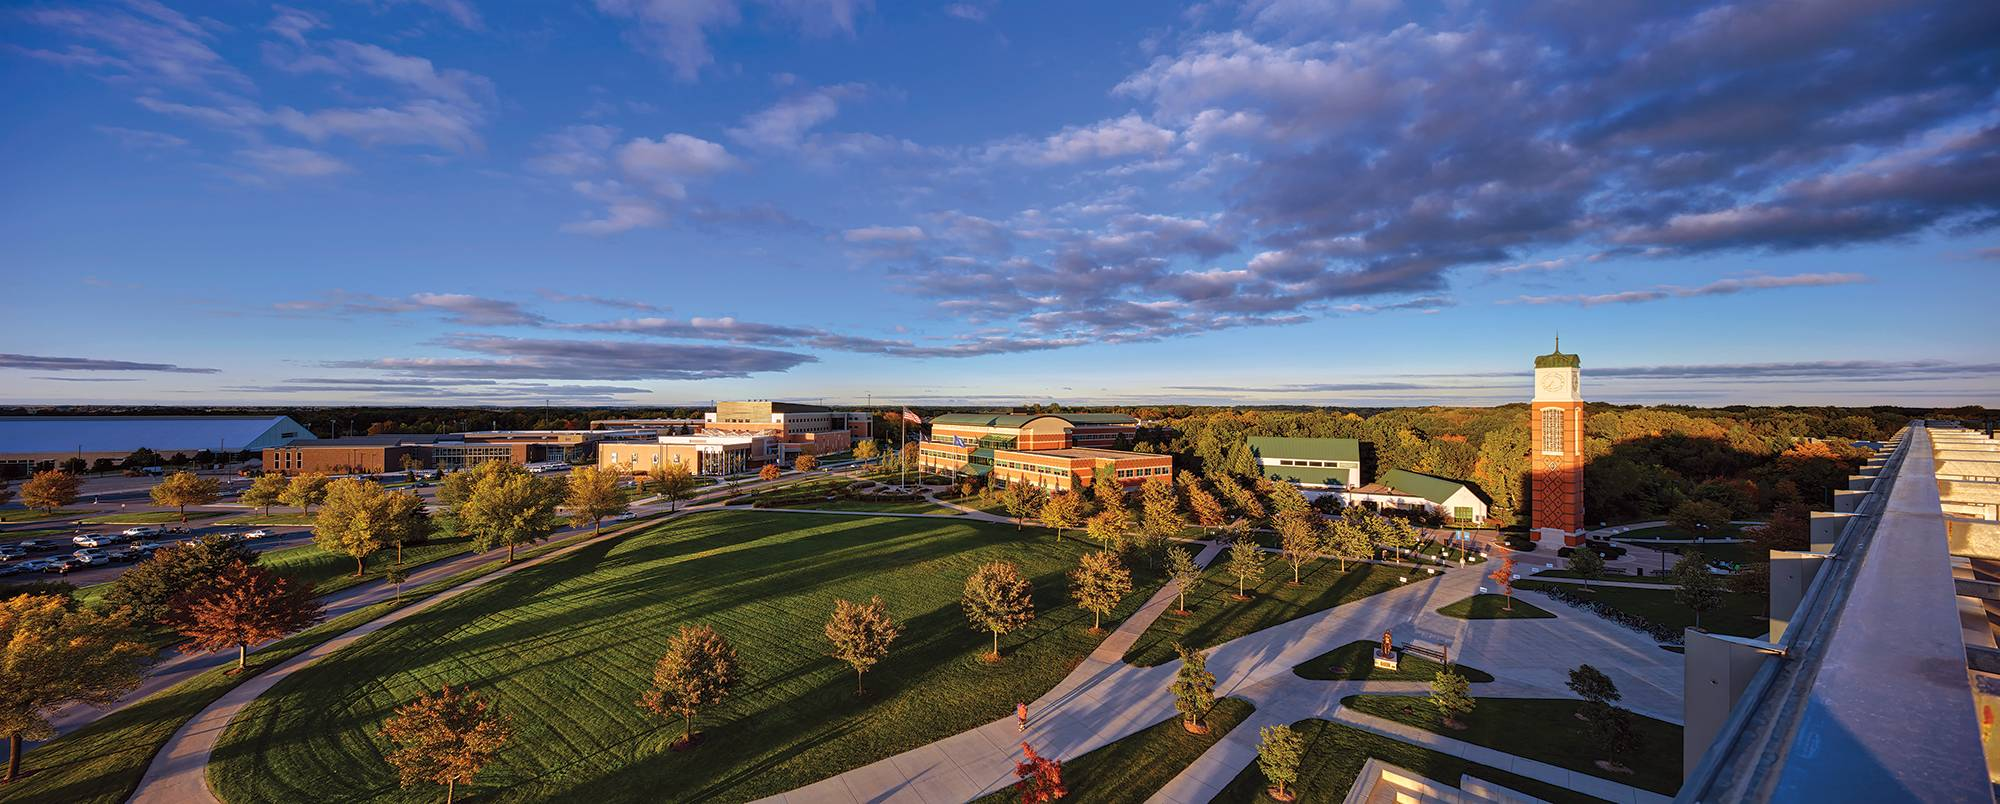 An image from the cover page of the 2019 Grand Valley accountability report. The photo features a photo of the clock tower area from the raised vantage point of the roof of the Mary Idema Pew Library.